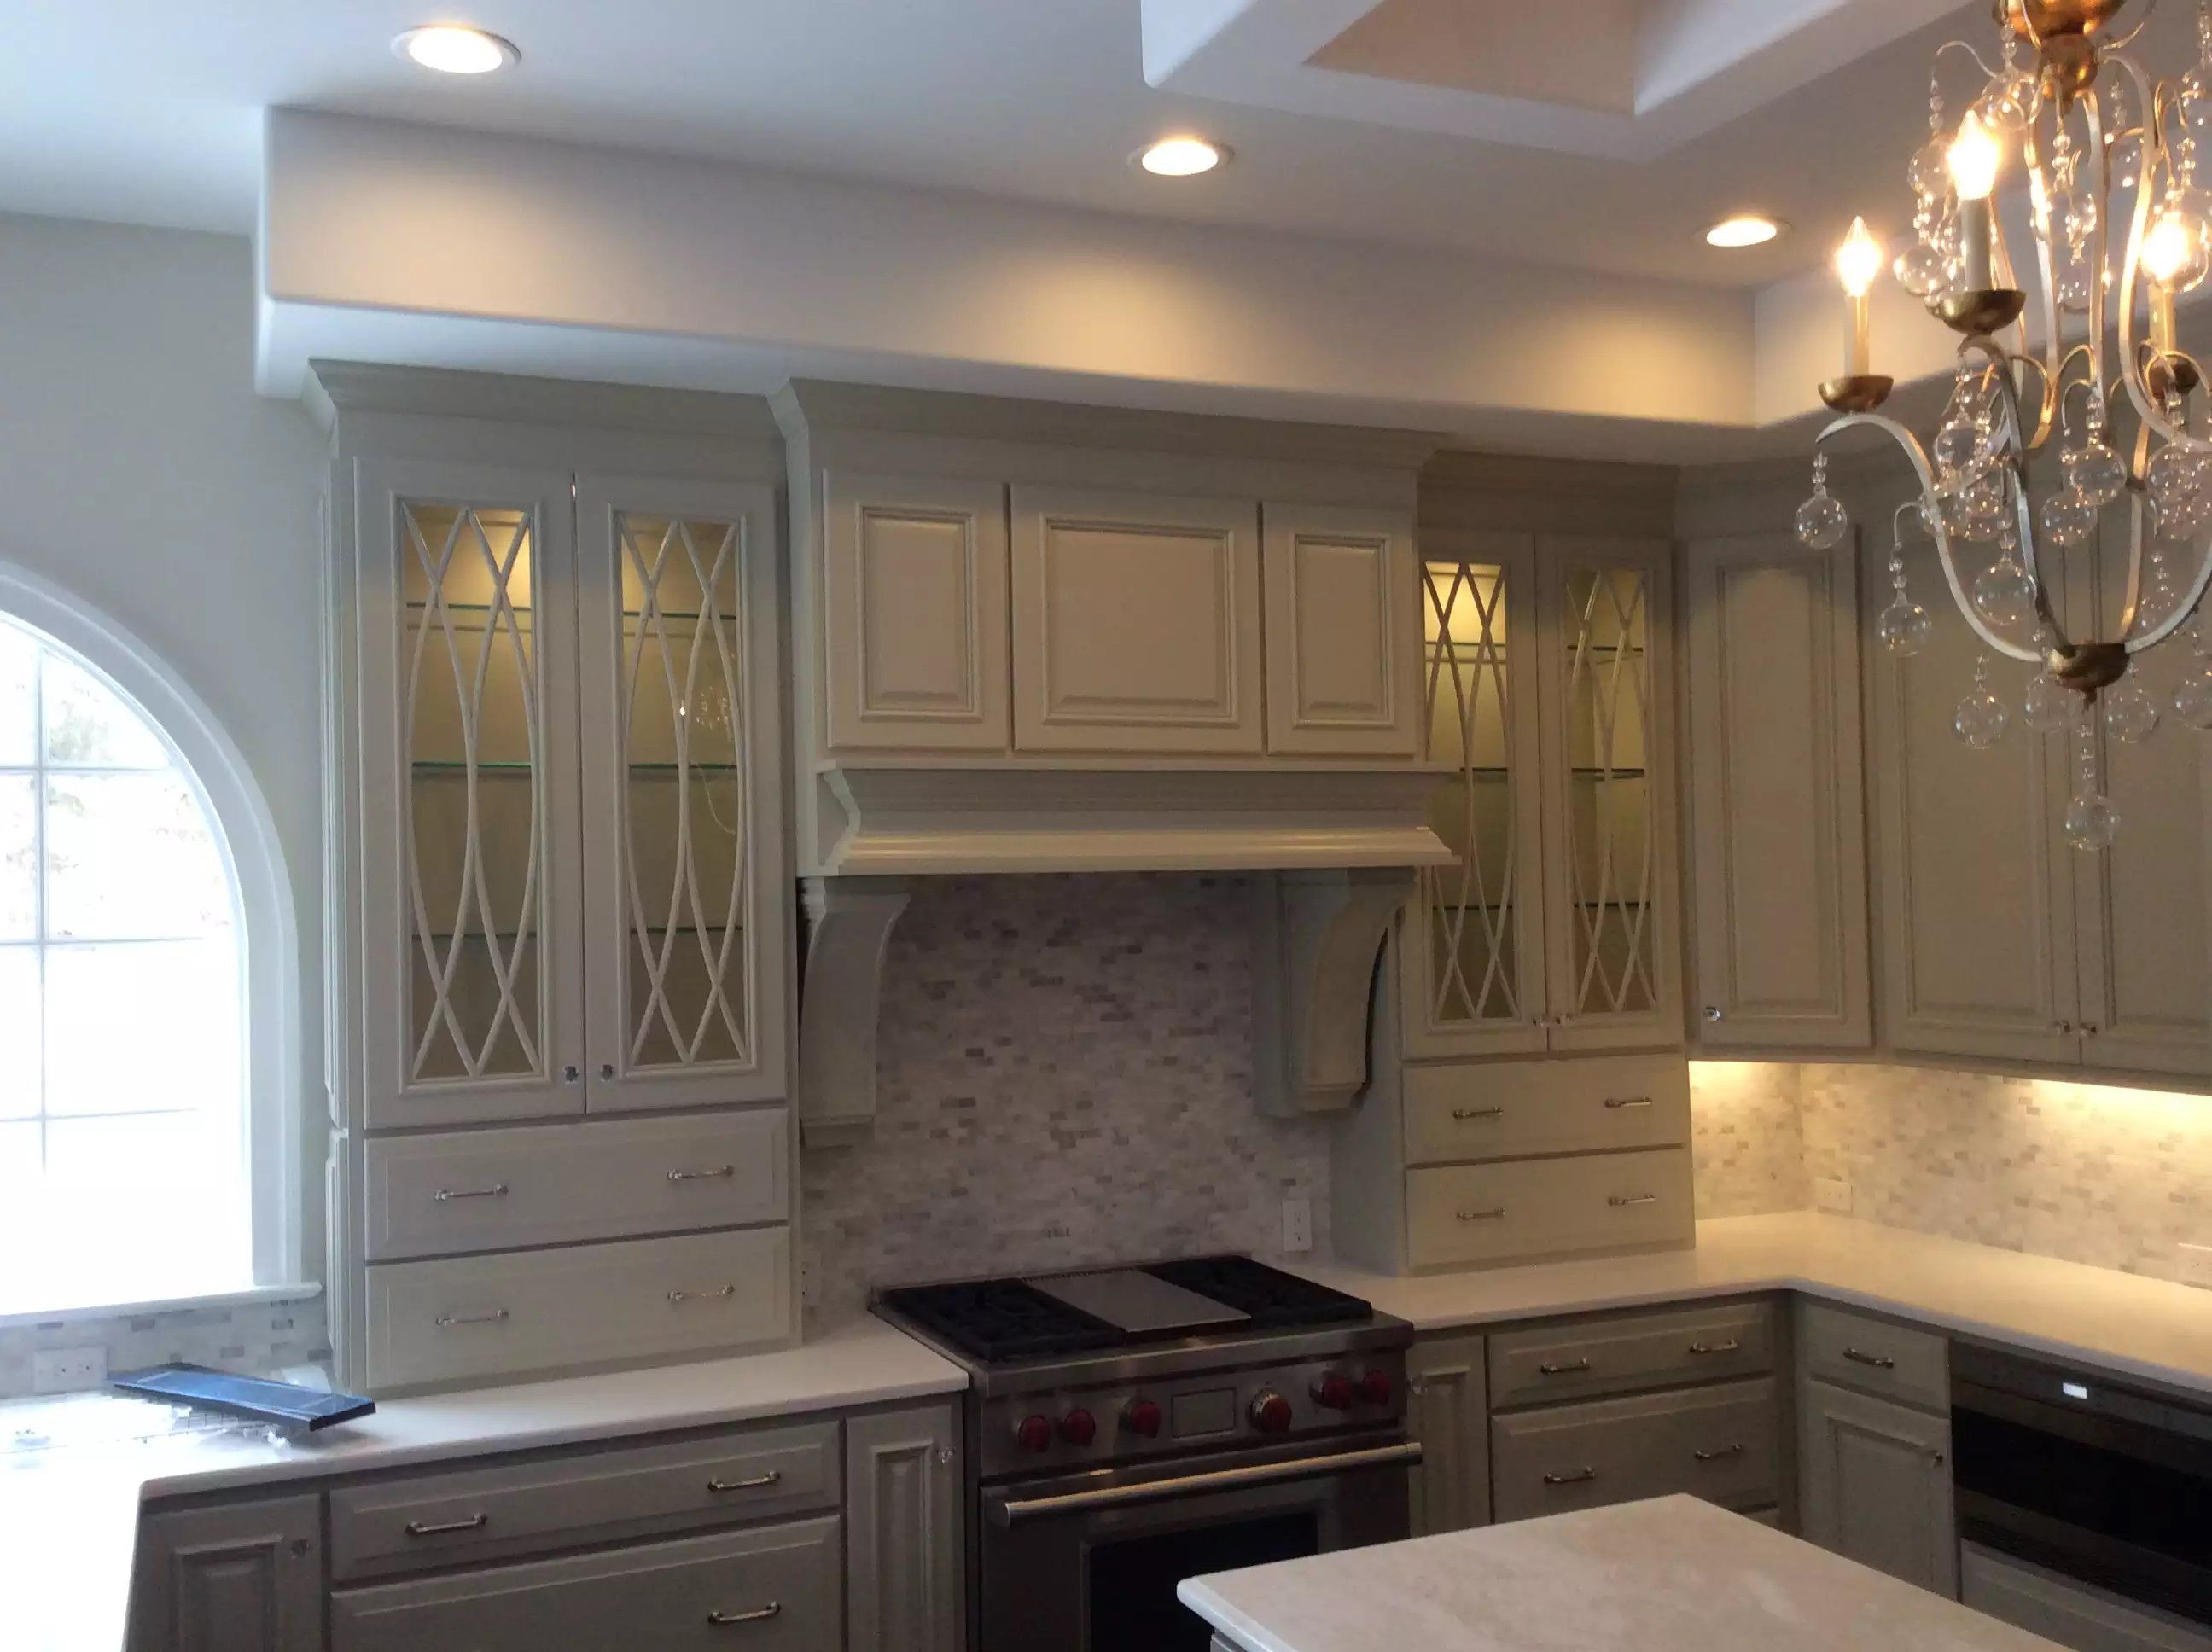 Grey Painted Kitchen Cabinetry And Hood With Arched Paned Glass Fronted Cabinet Doors Grey Painted Kitchen Kitchen Cabinetry Cabinetry